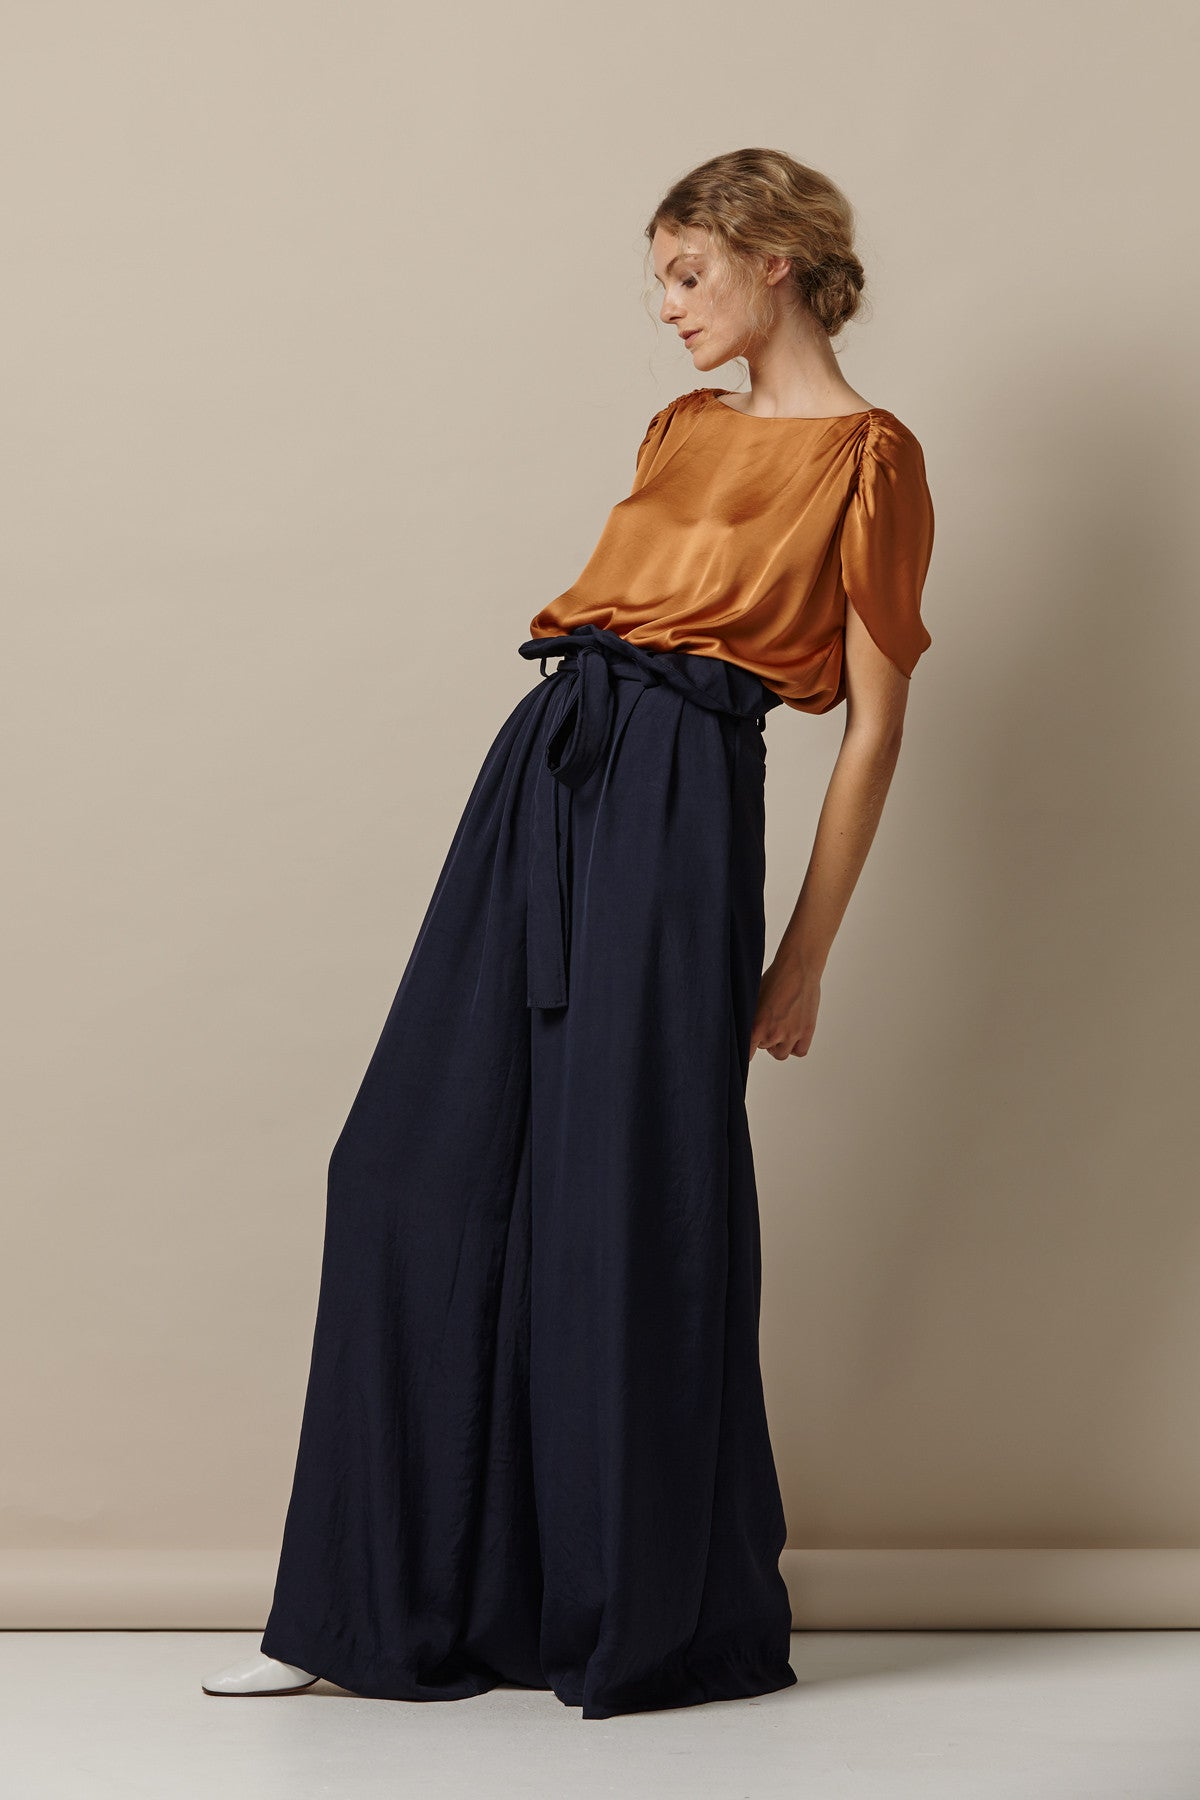 NZ Fashion Clothing Boutique gregorythelabel SS17 Amalie Top Japanese Satin Burnt Caramel Gather Detail Shoulder Made in NZ